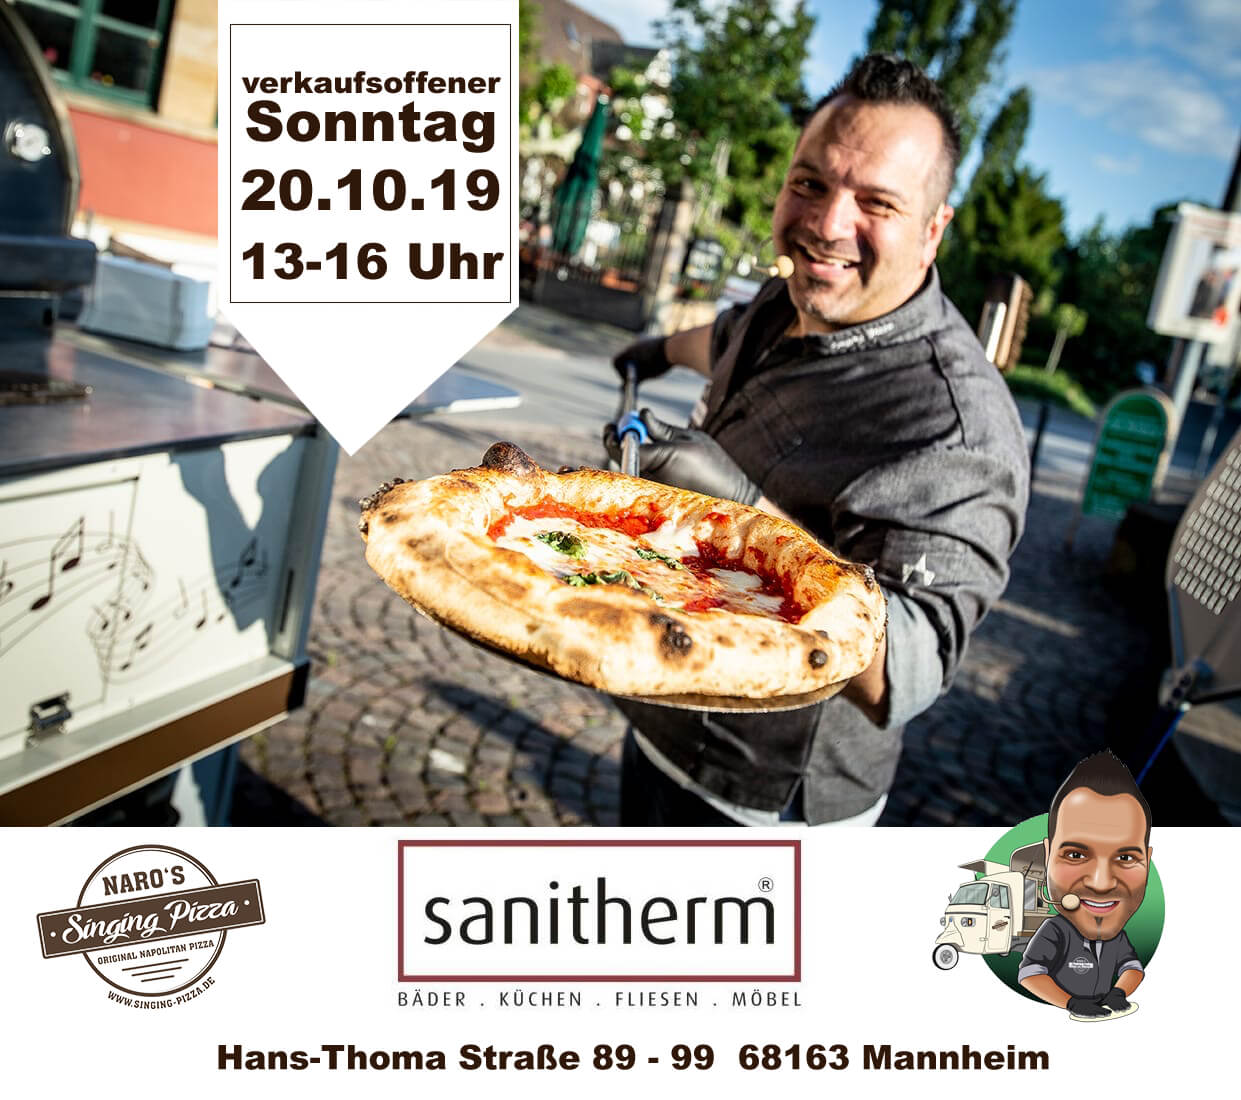 Naro's Singing Pizza // Sanitherm Seckenheim